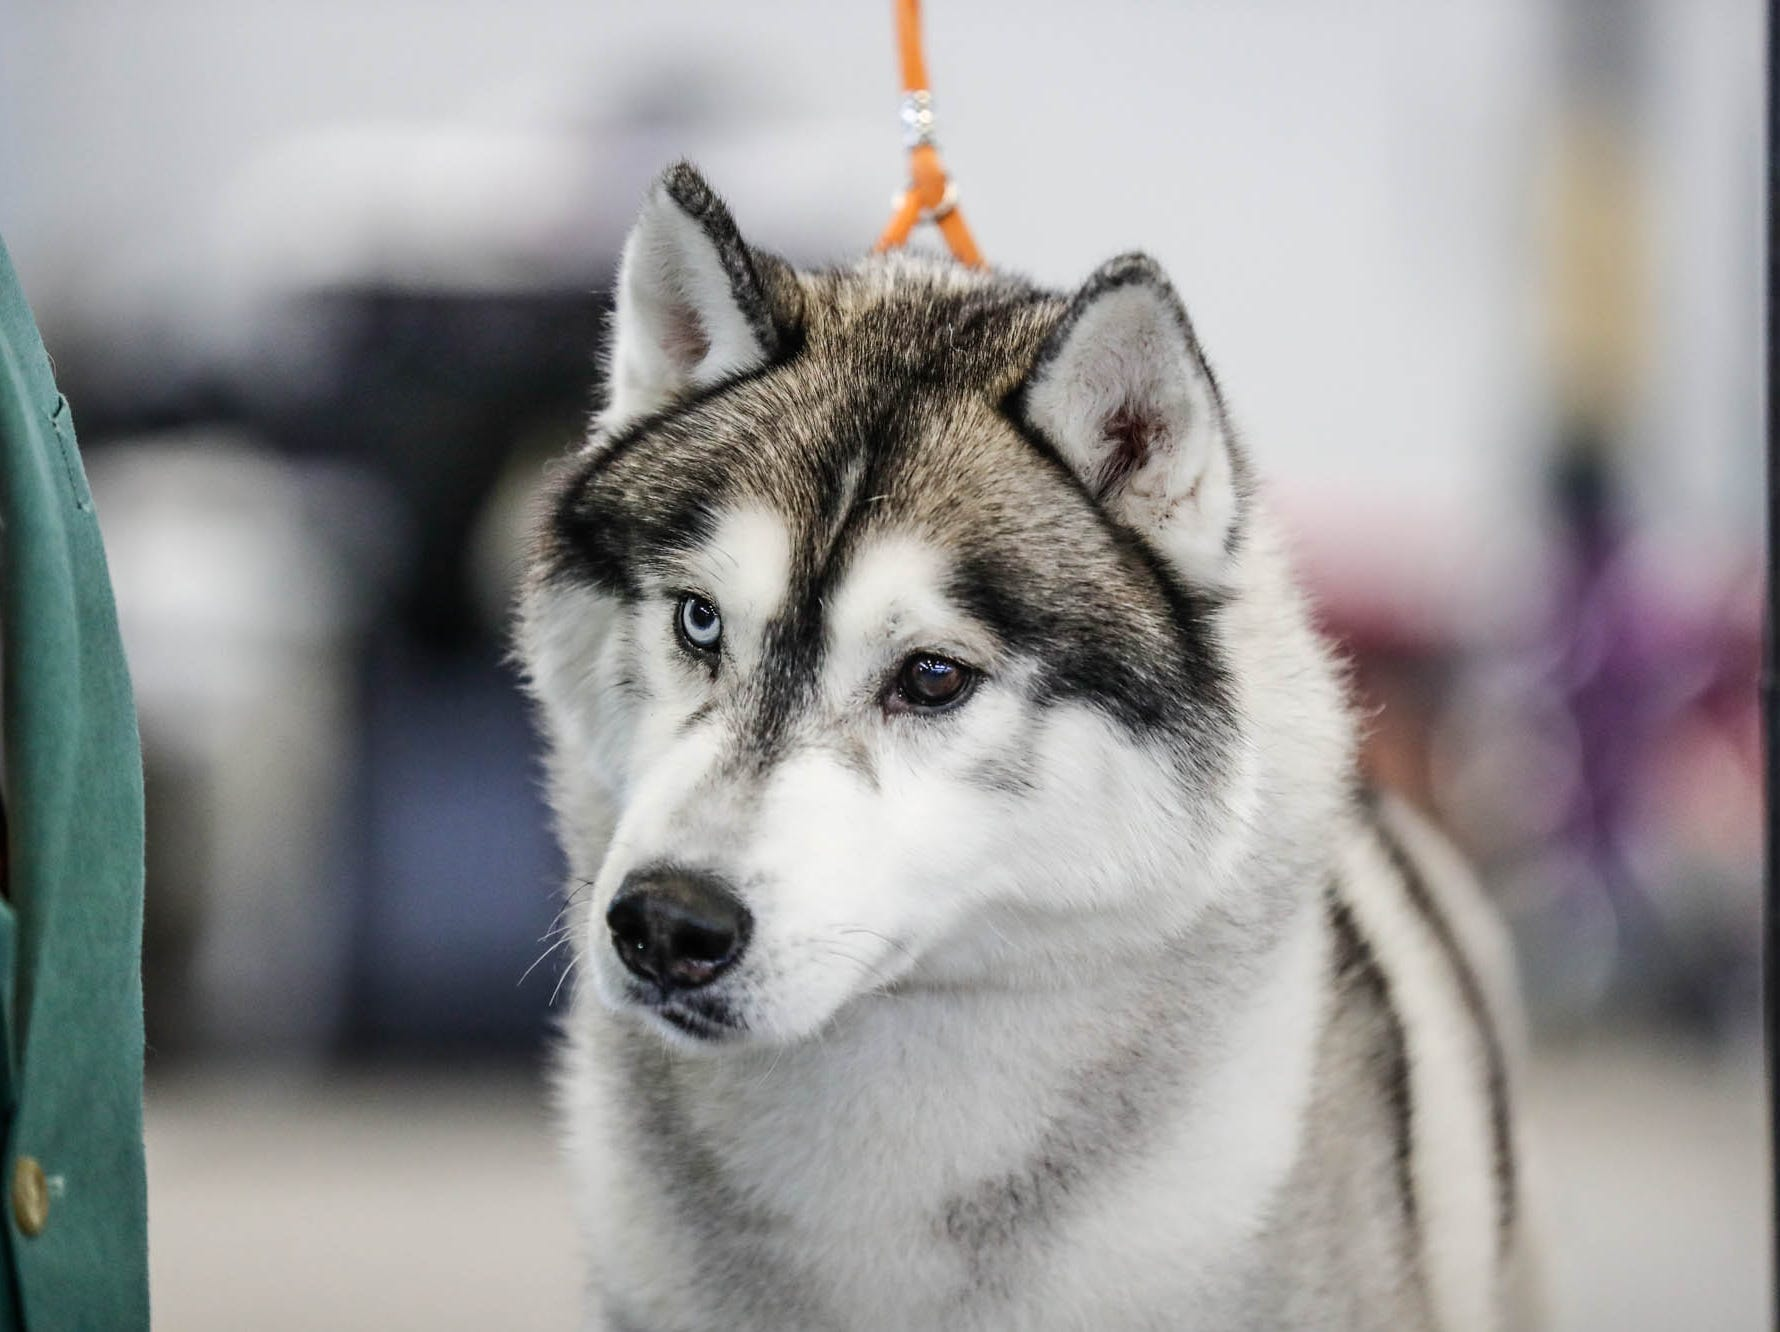 Grand Champion Karnovandas Stephen Cold Bear, a husky is groomed during the Indy Winter Classic All Breed Dog Show, held at the Indiana State Fairgrounds on Sunday, Feb. 10, 2019.